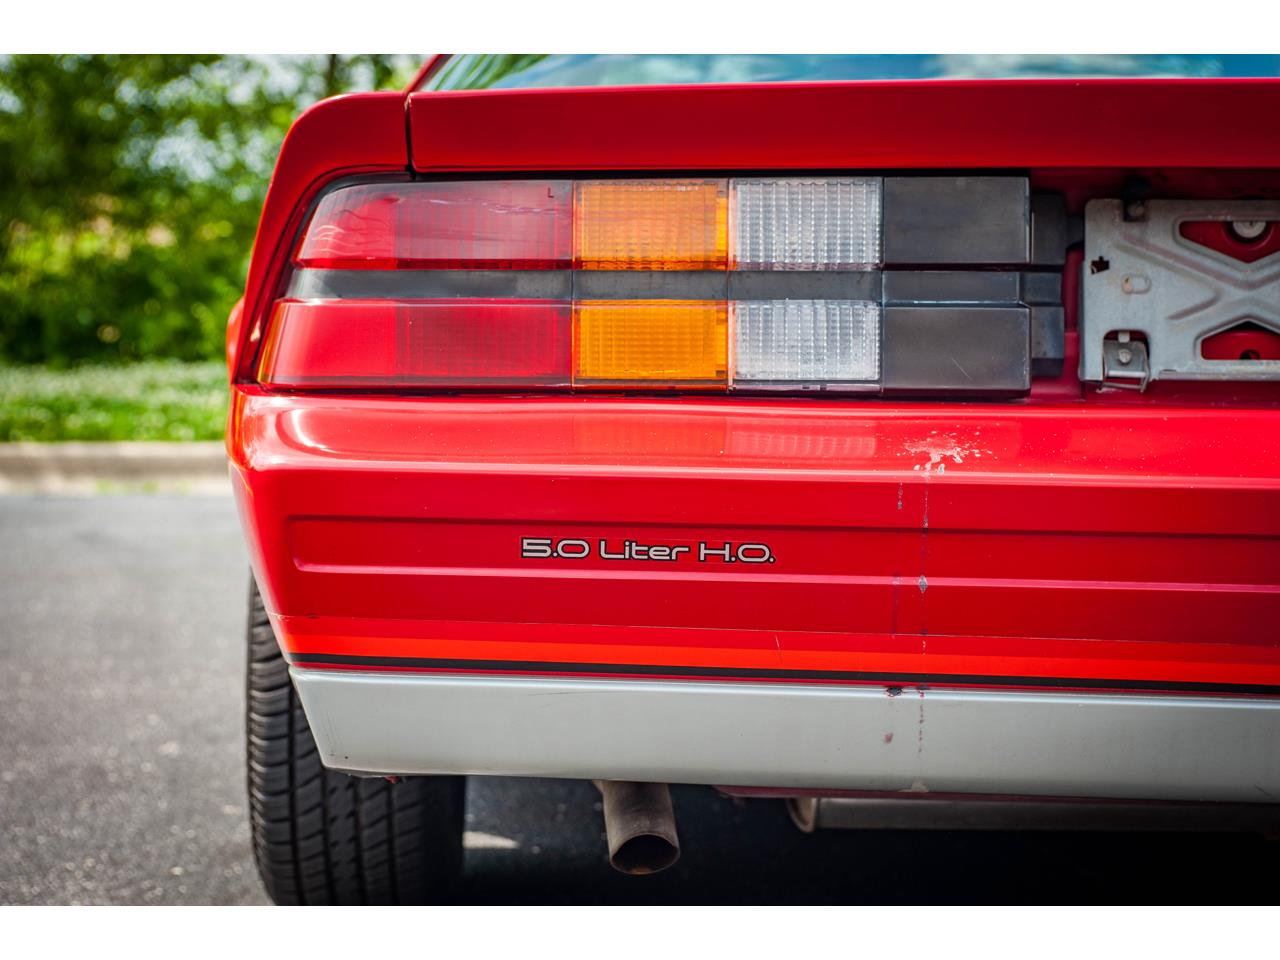 Large Picture of '84 Camaro located in O'Fallon Illinois - $9,500.00 Offered by Gateway Classic Cars - St. Louis - QB9Y